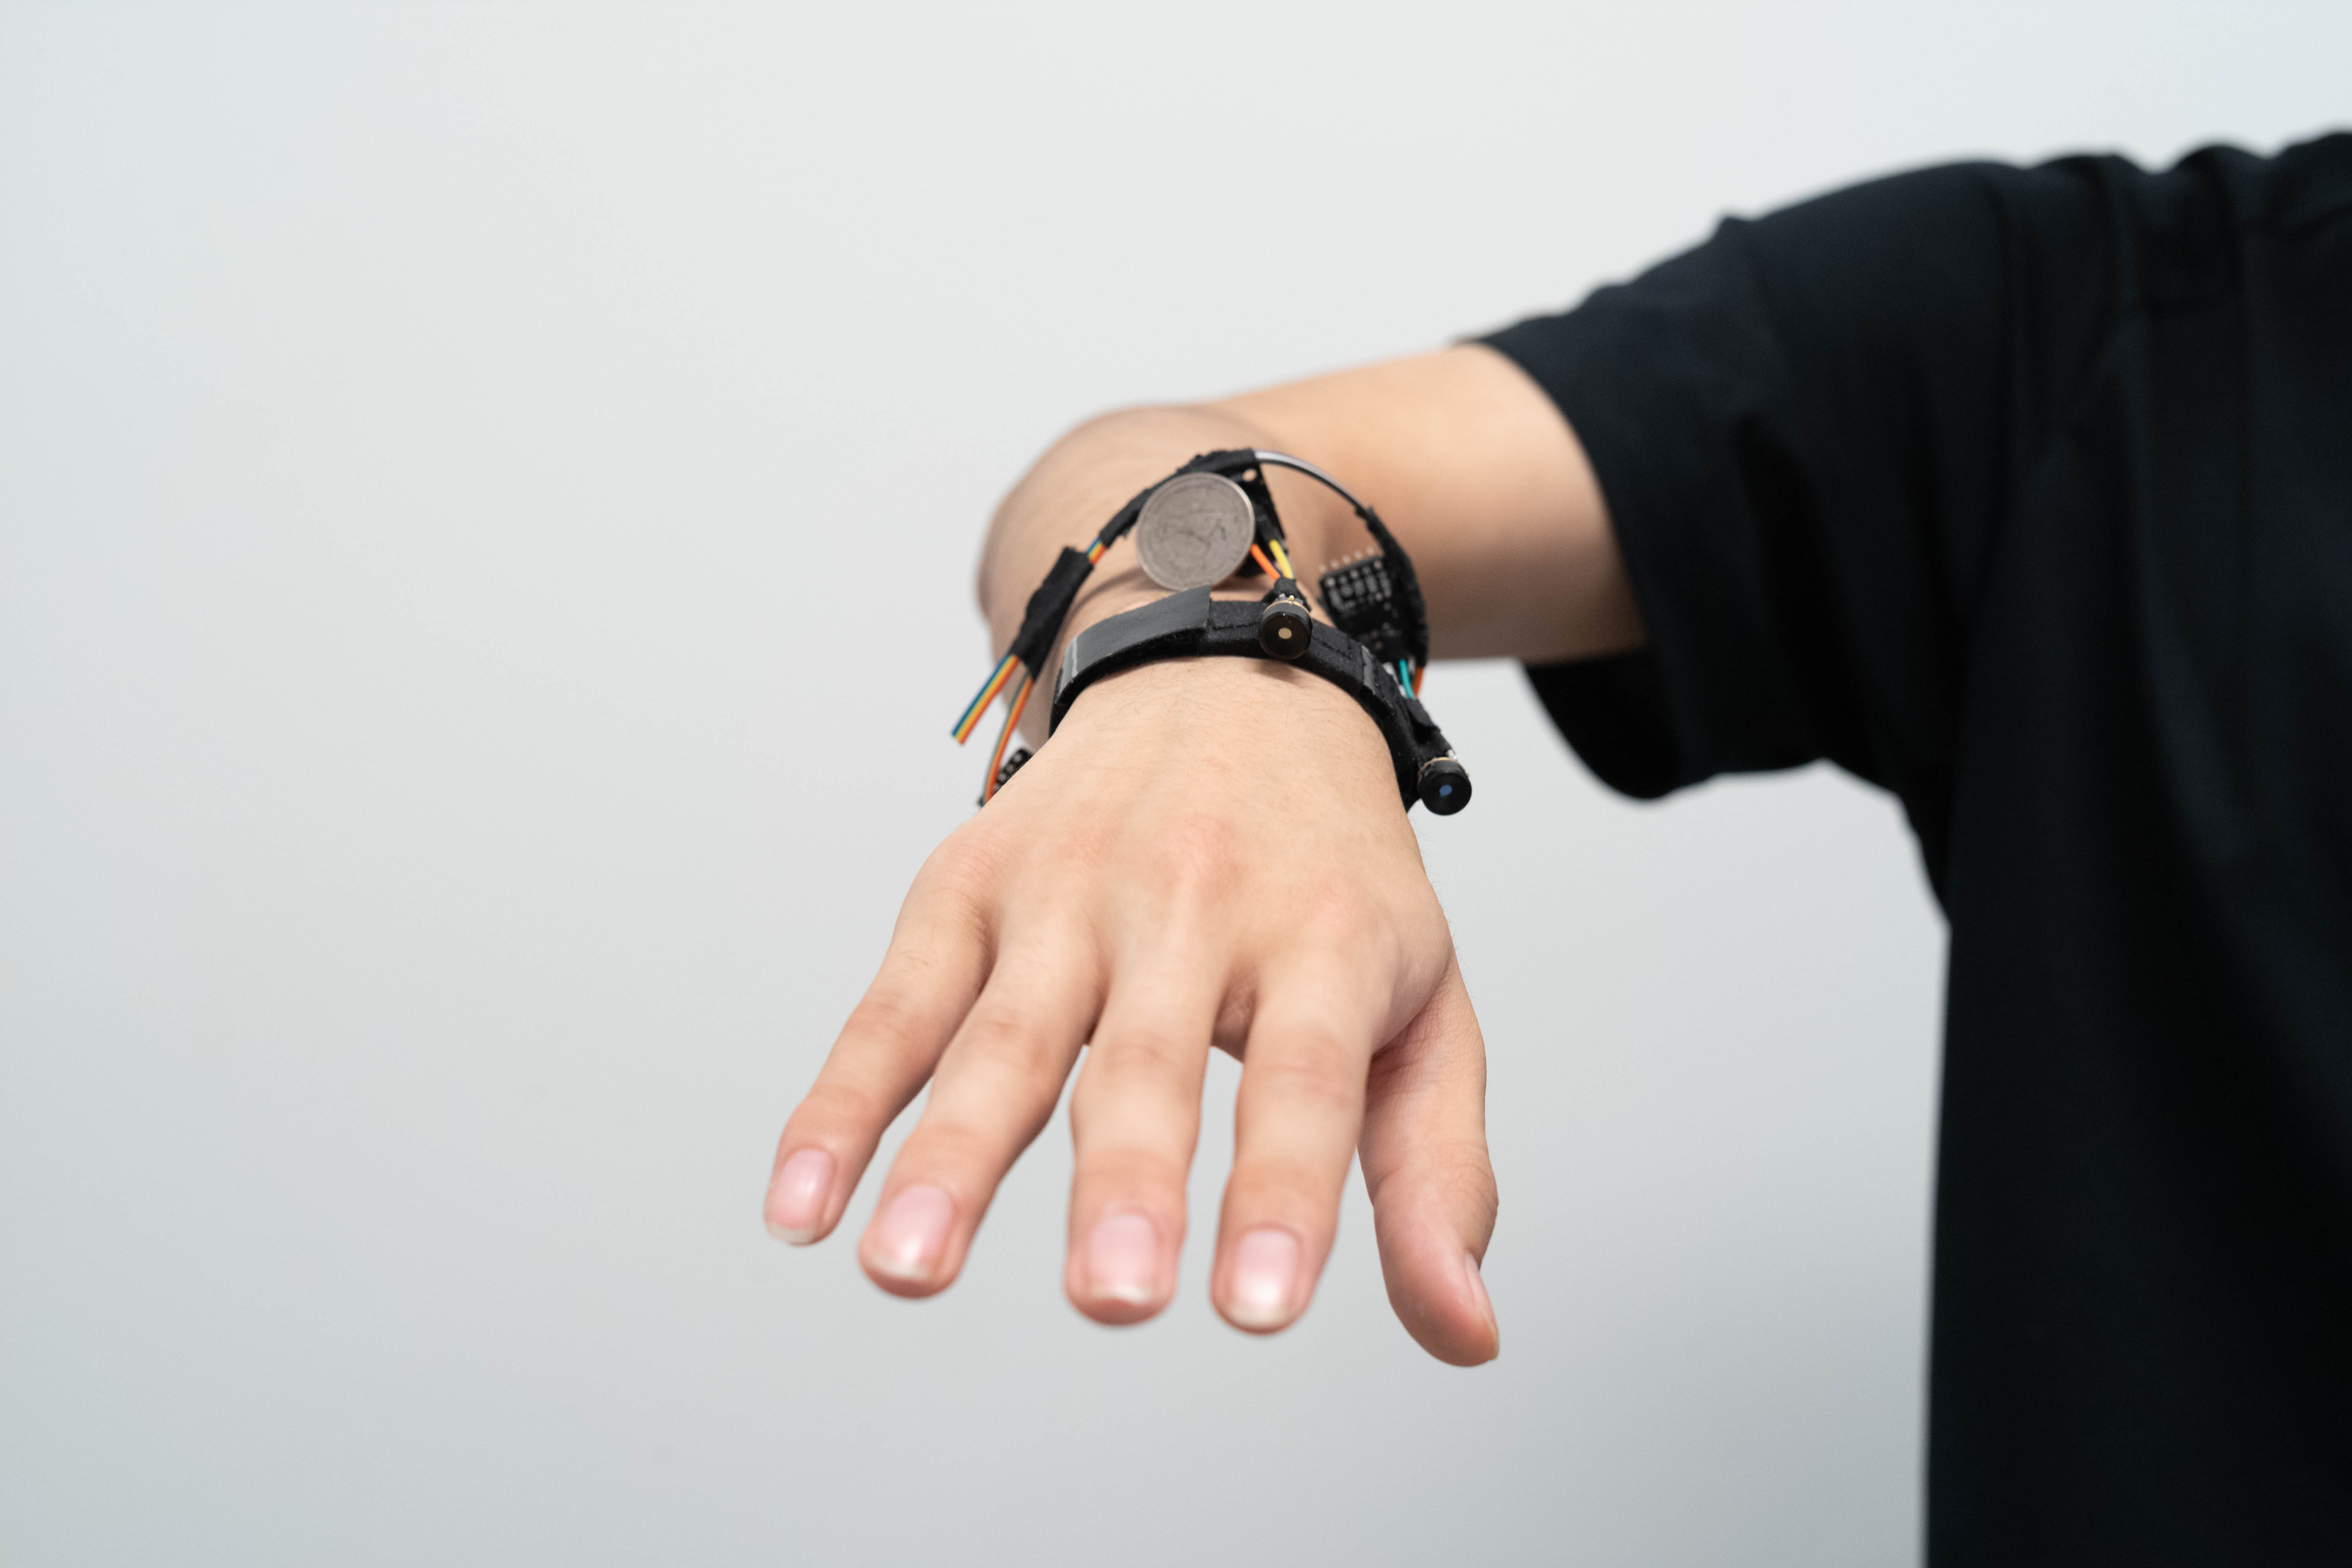 The FingerTrak bracelet